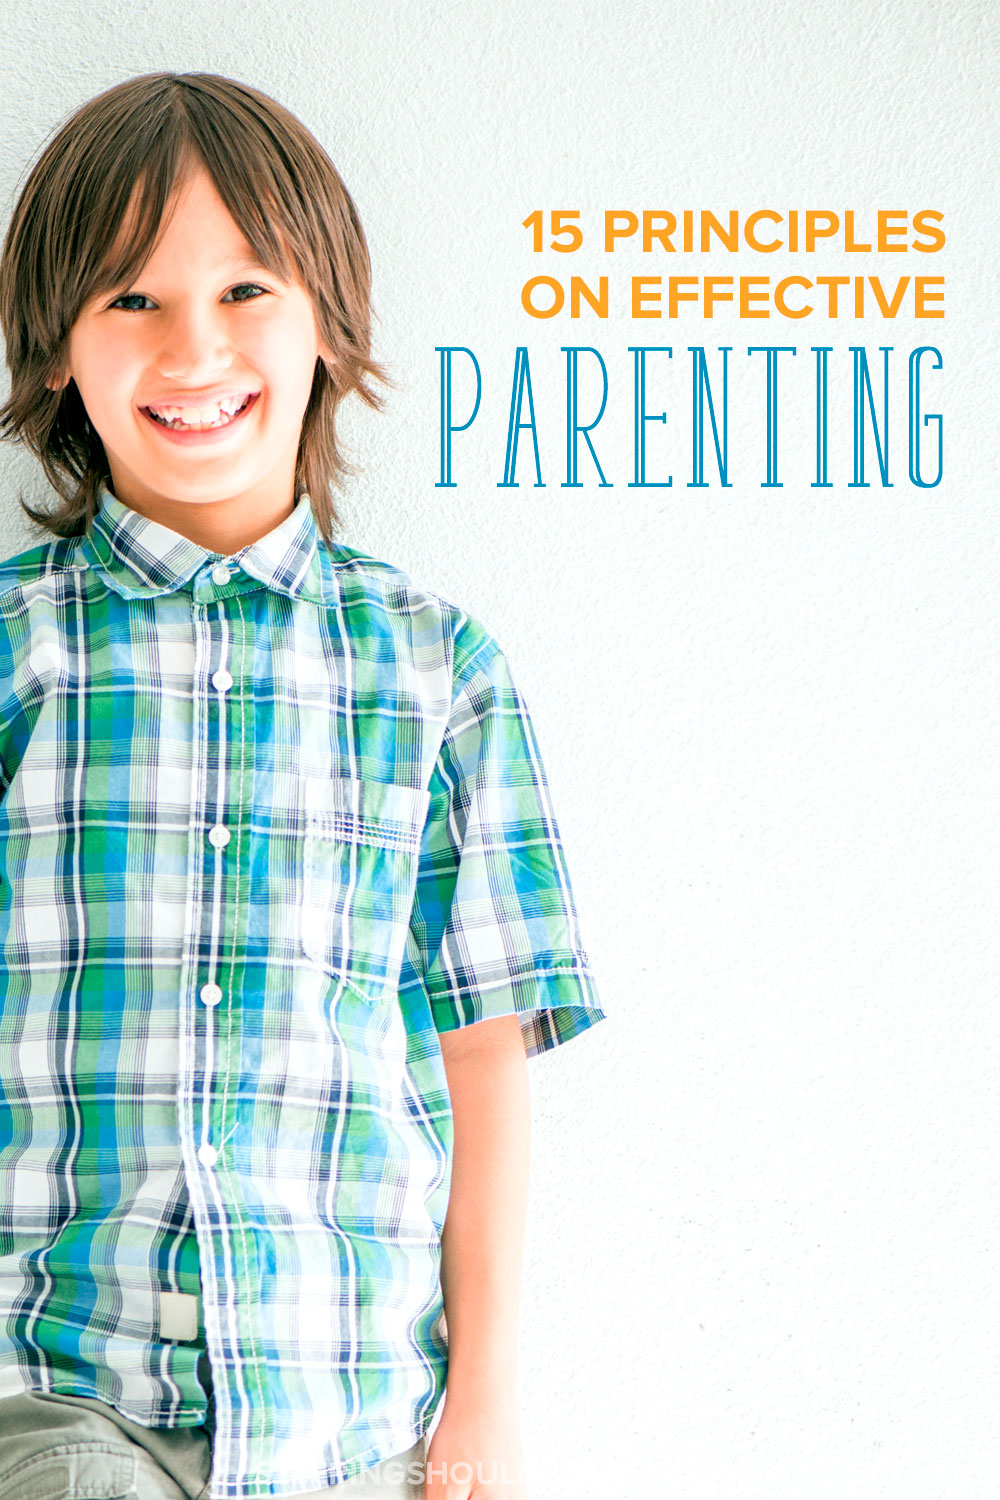 Learn purposeful and effective parenting tips with these 15 principles. Be the parent your child needs you to be! A must-read for any mom who wants to build a strong relationship with her child.